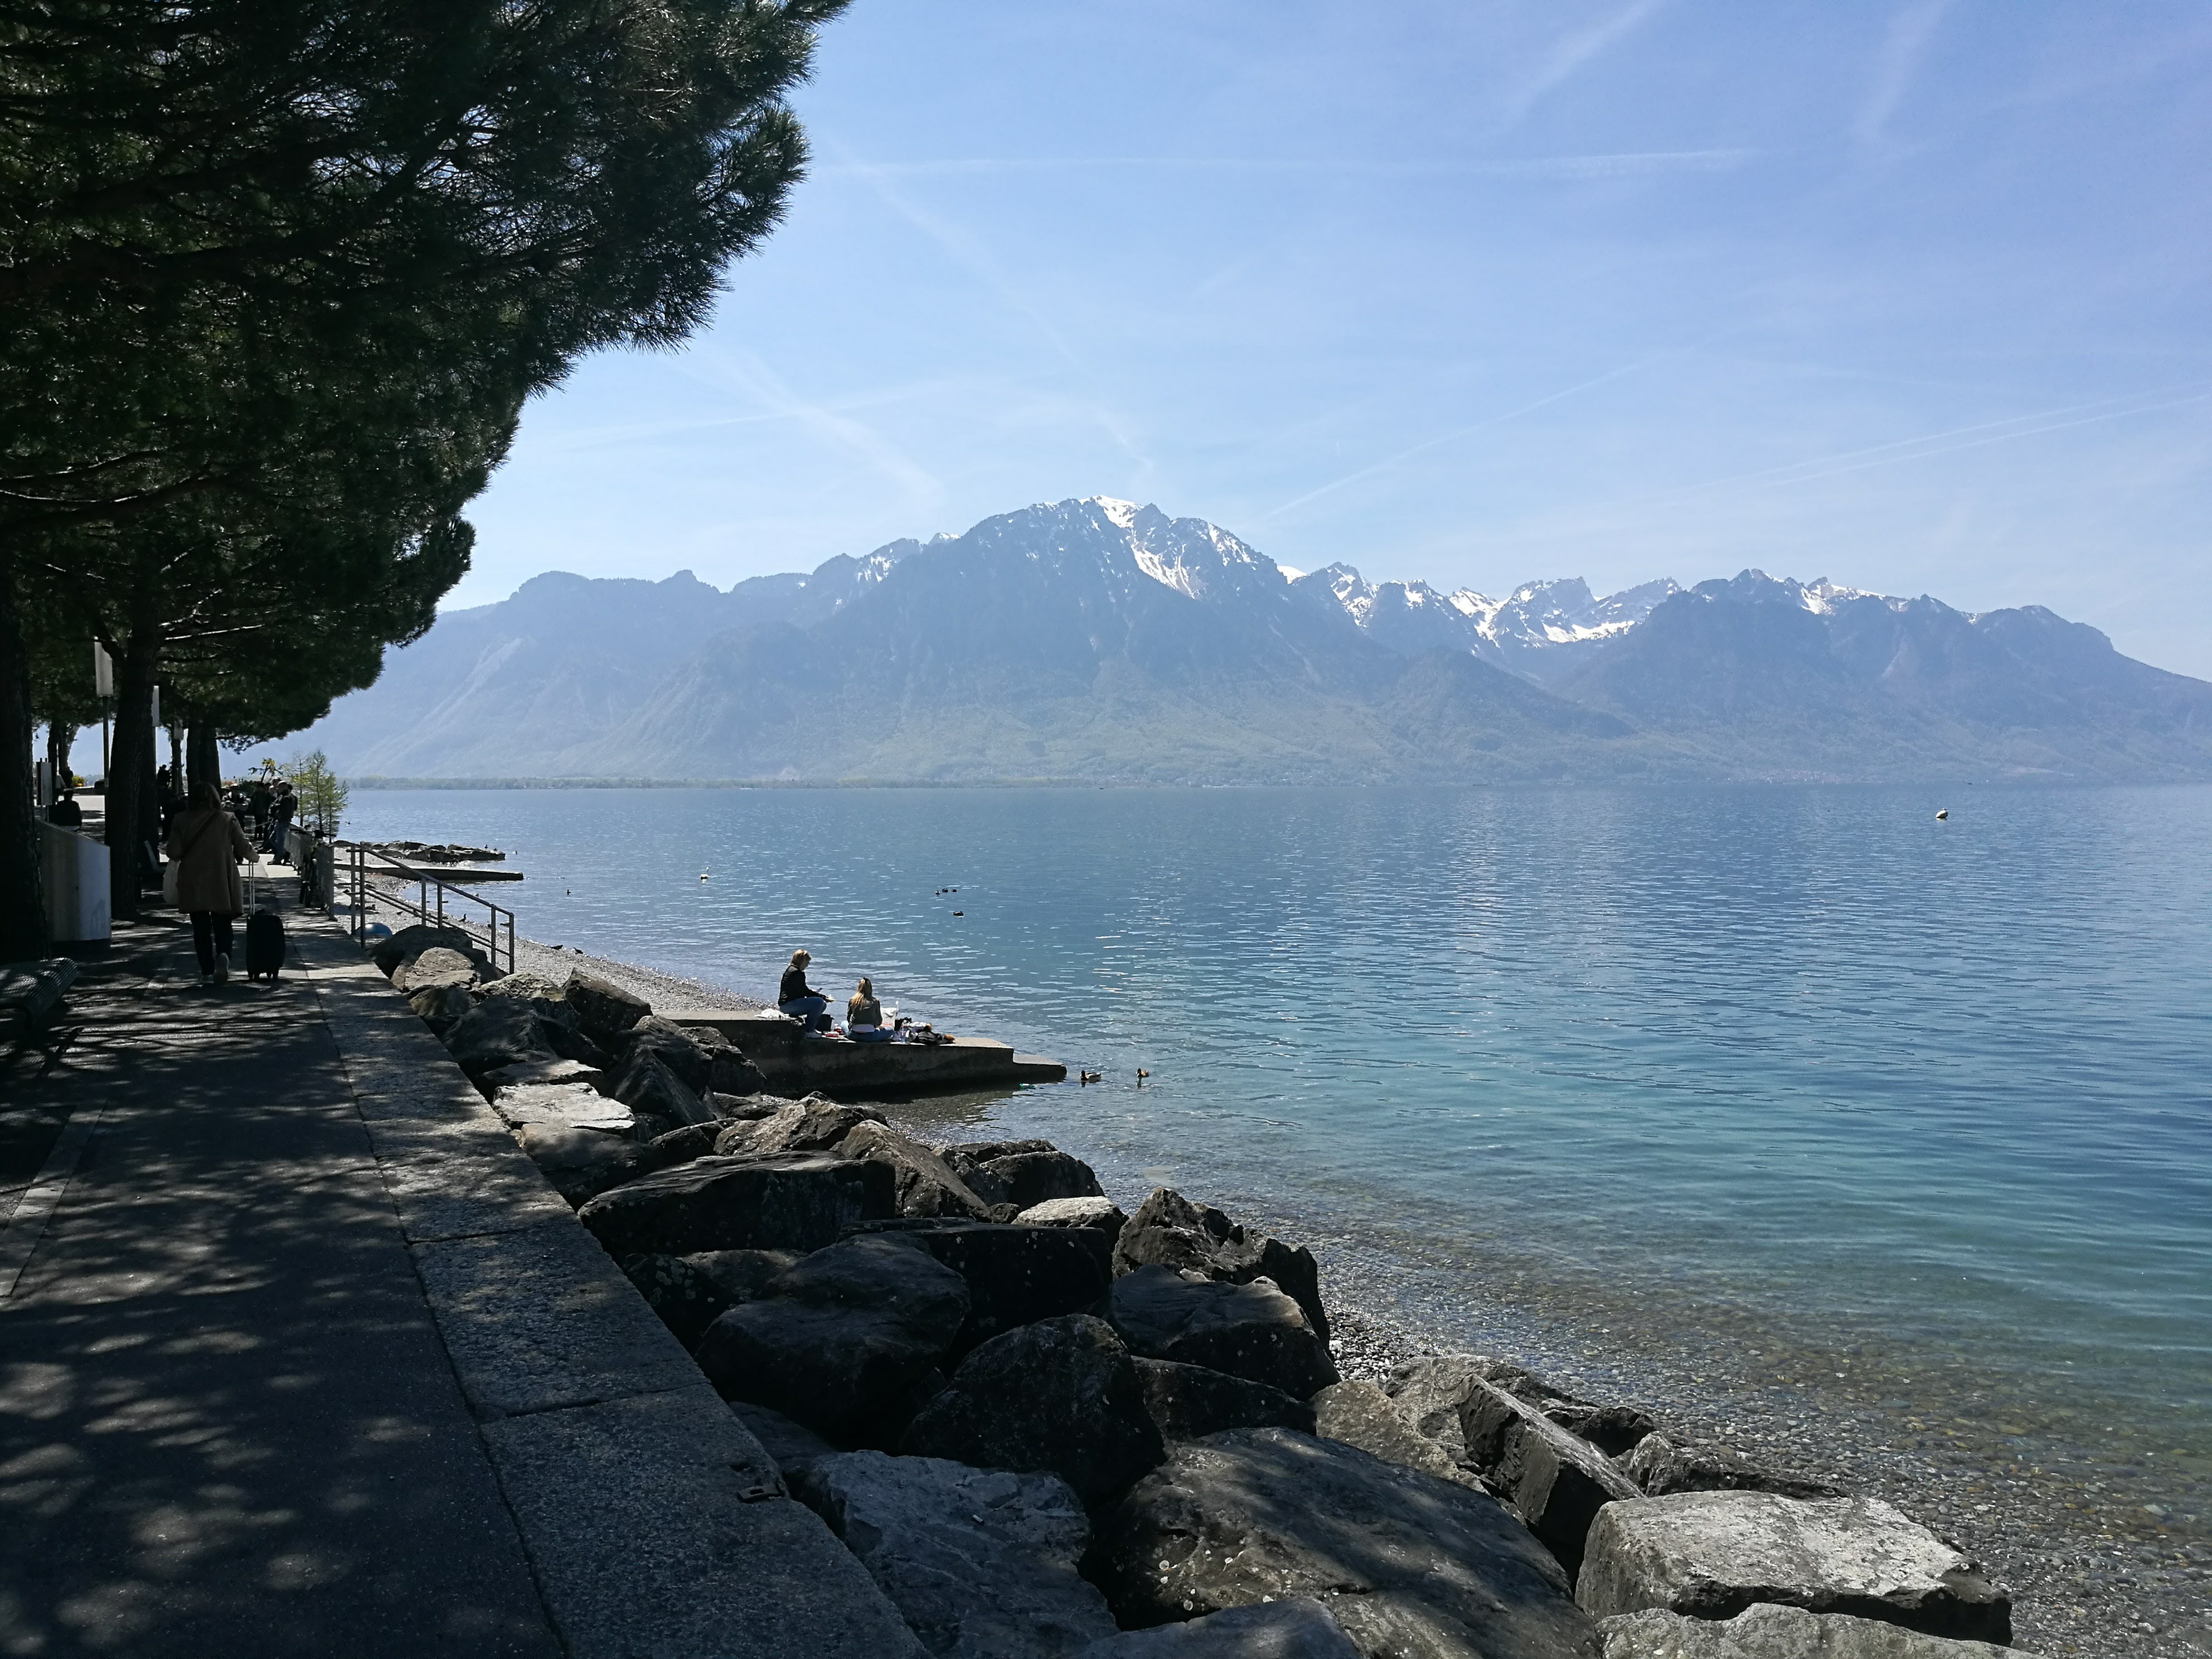 The waterfront at Montreux